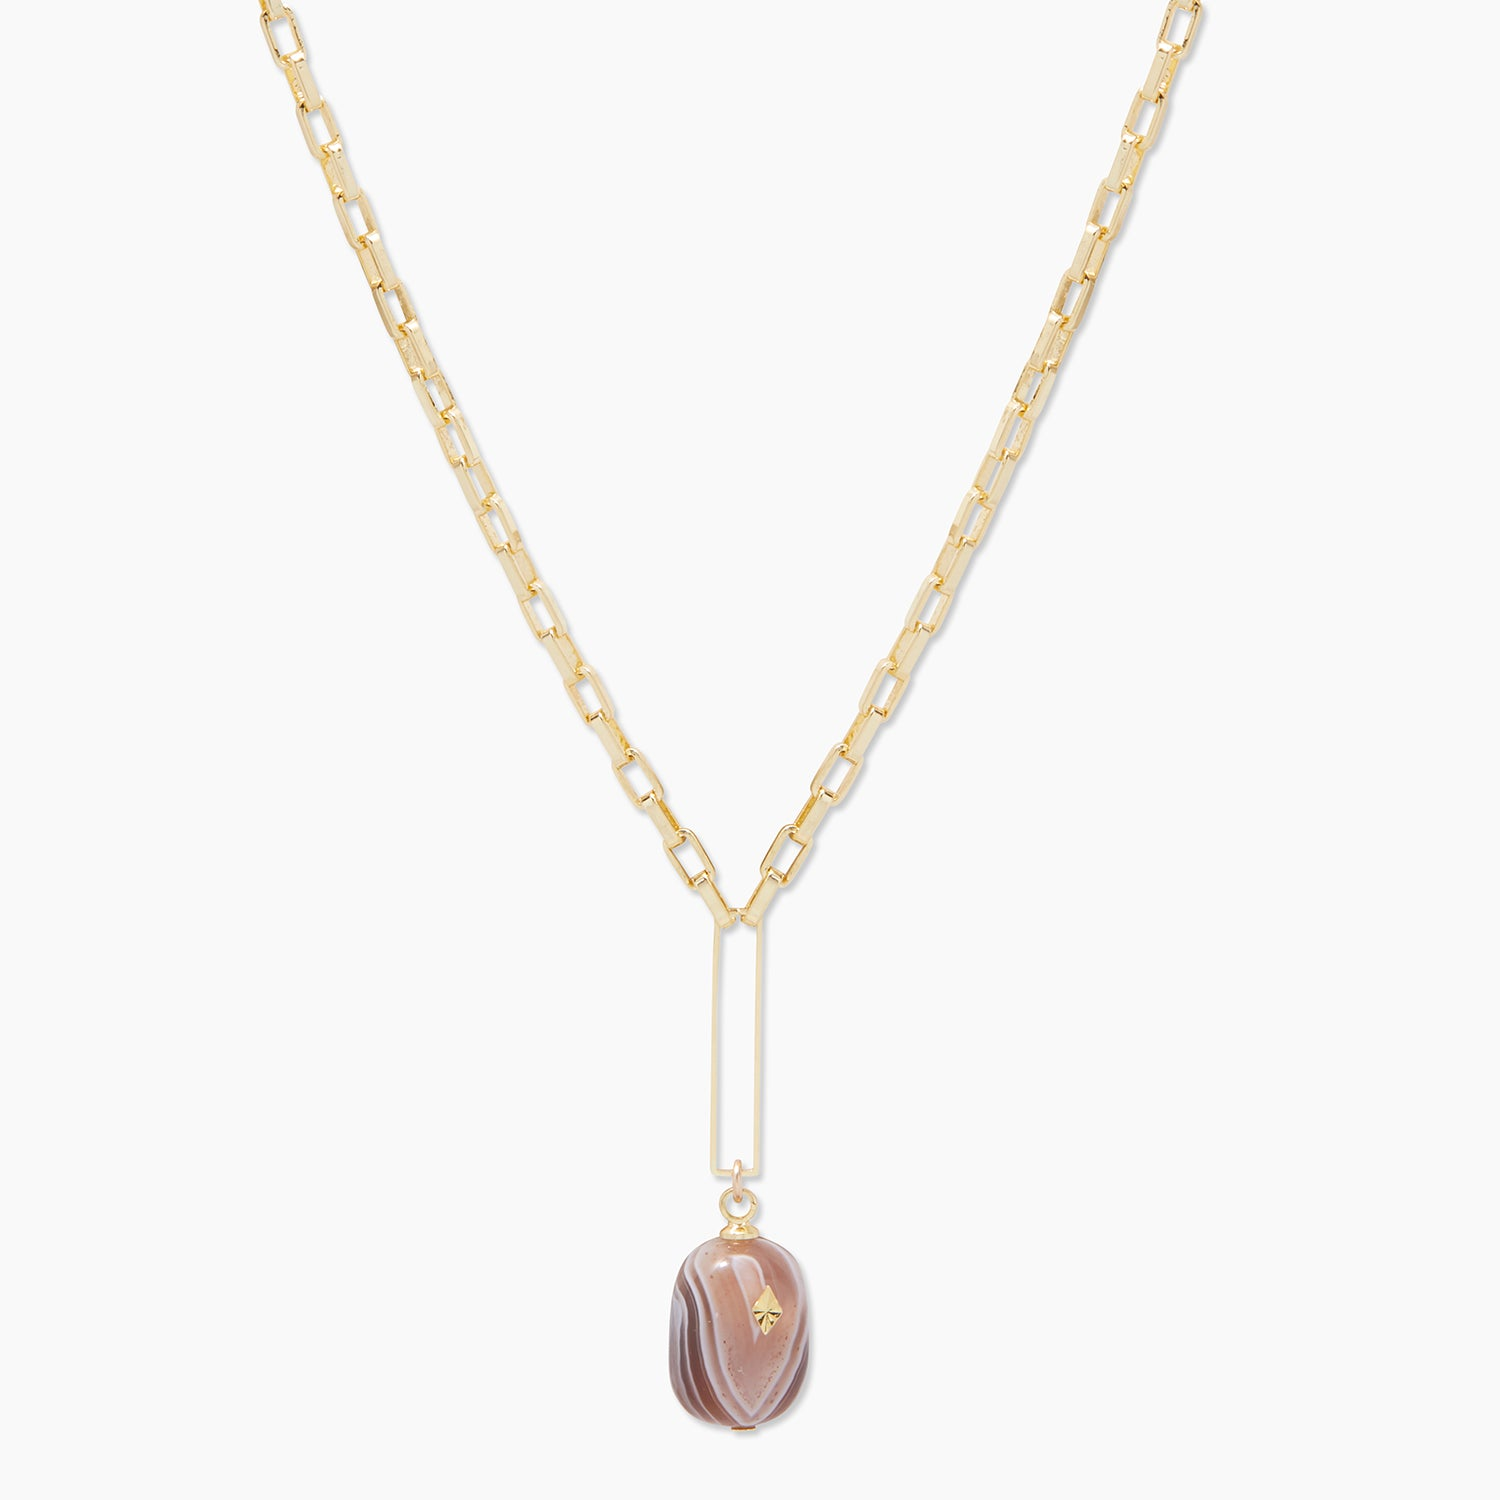 Gorjana ALICE GEM PENDANT NECKLACE IN GOLD PLATED BRASS, WOMEN'S IN GOLD/GREY AND BLACK BOTSWANA AGATE BY GO